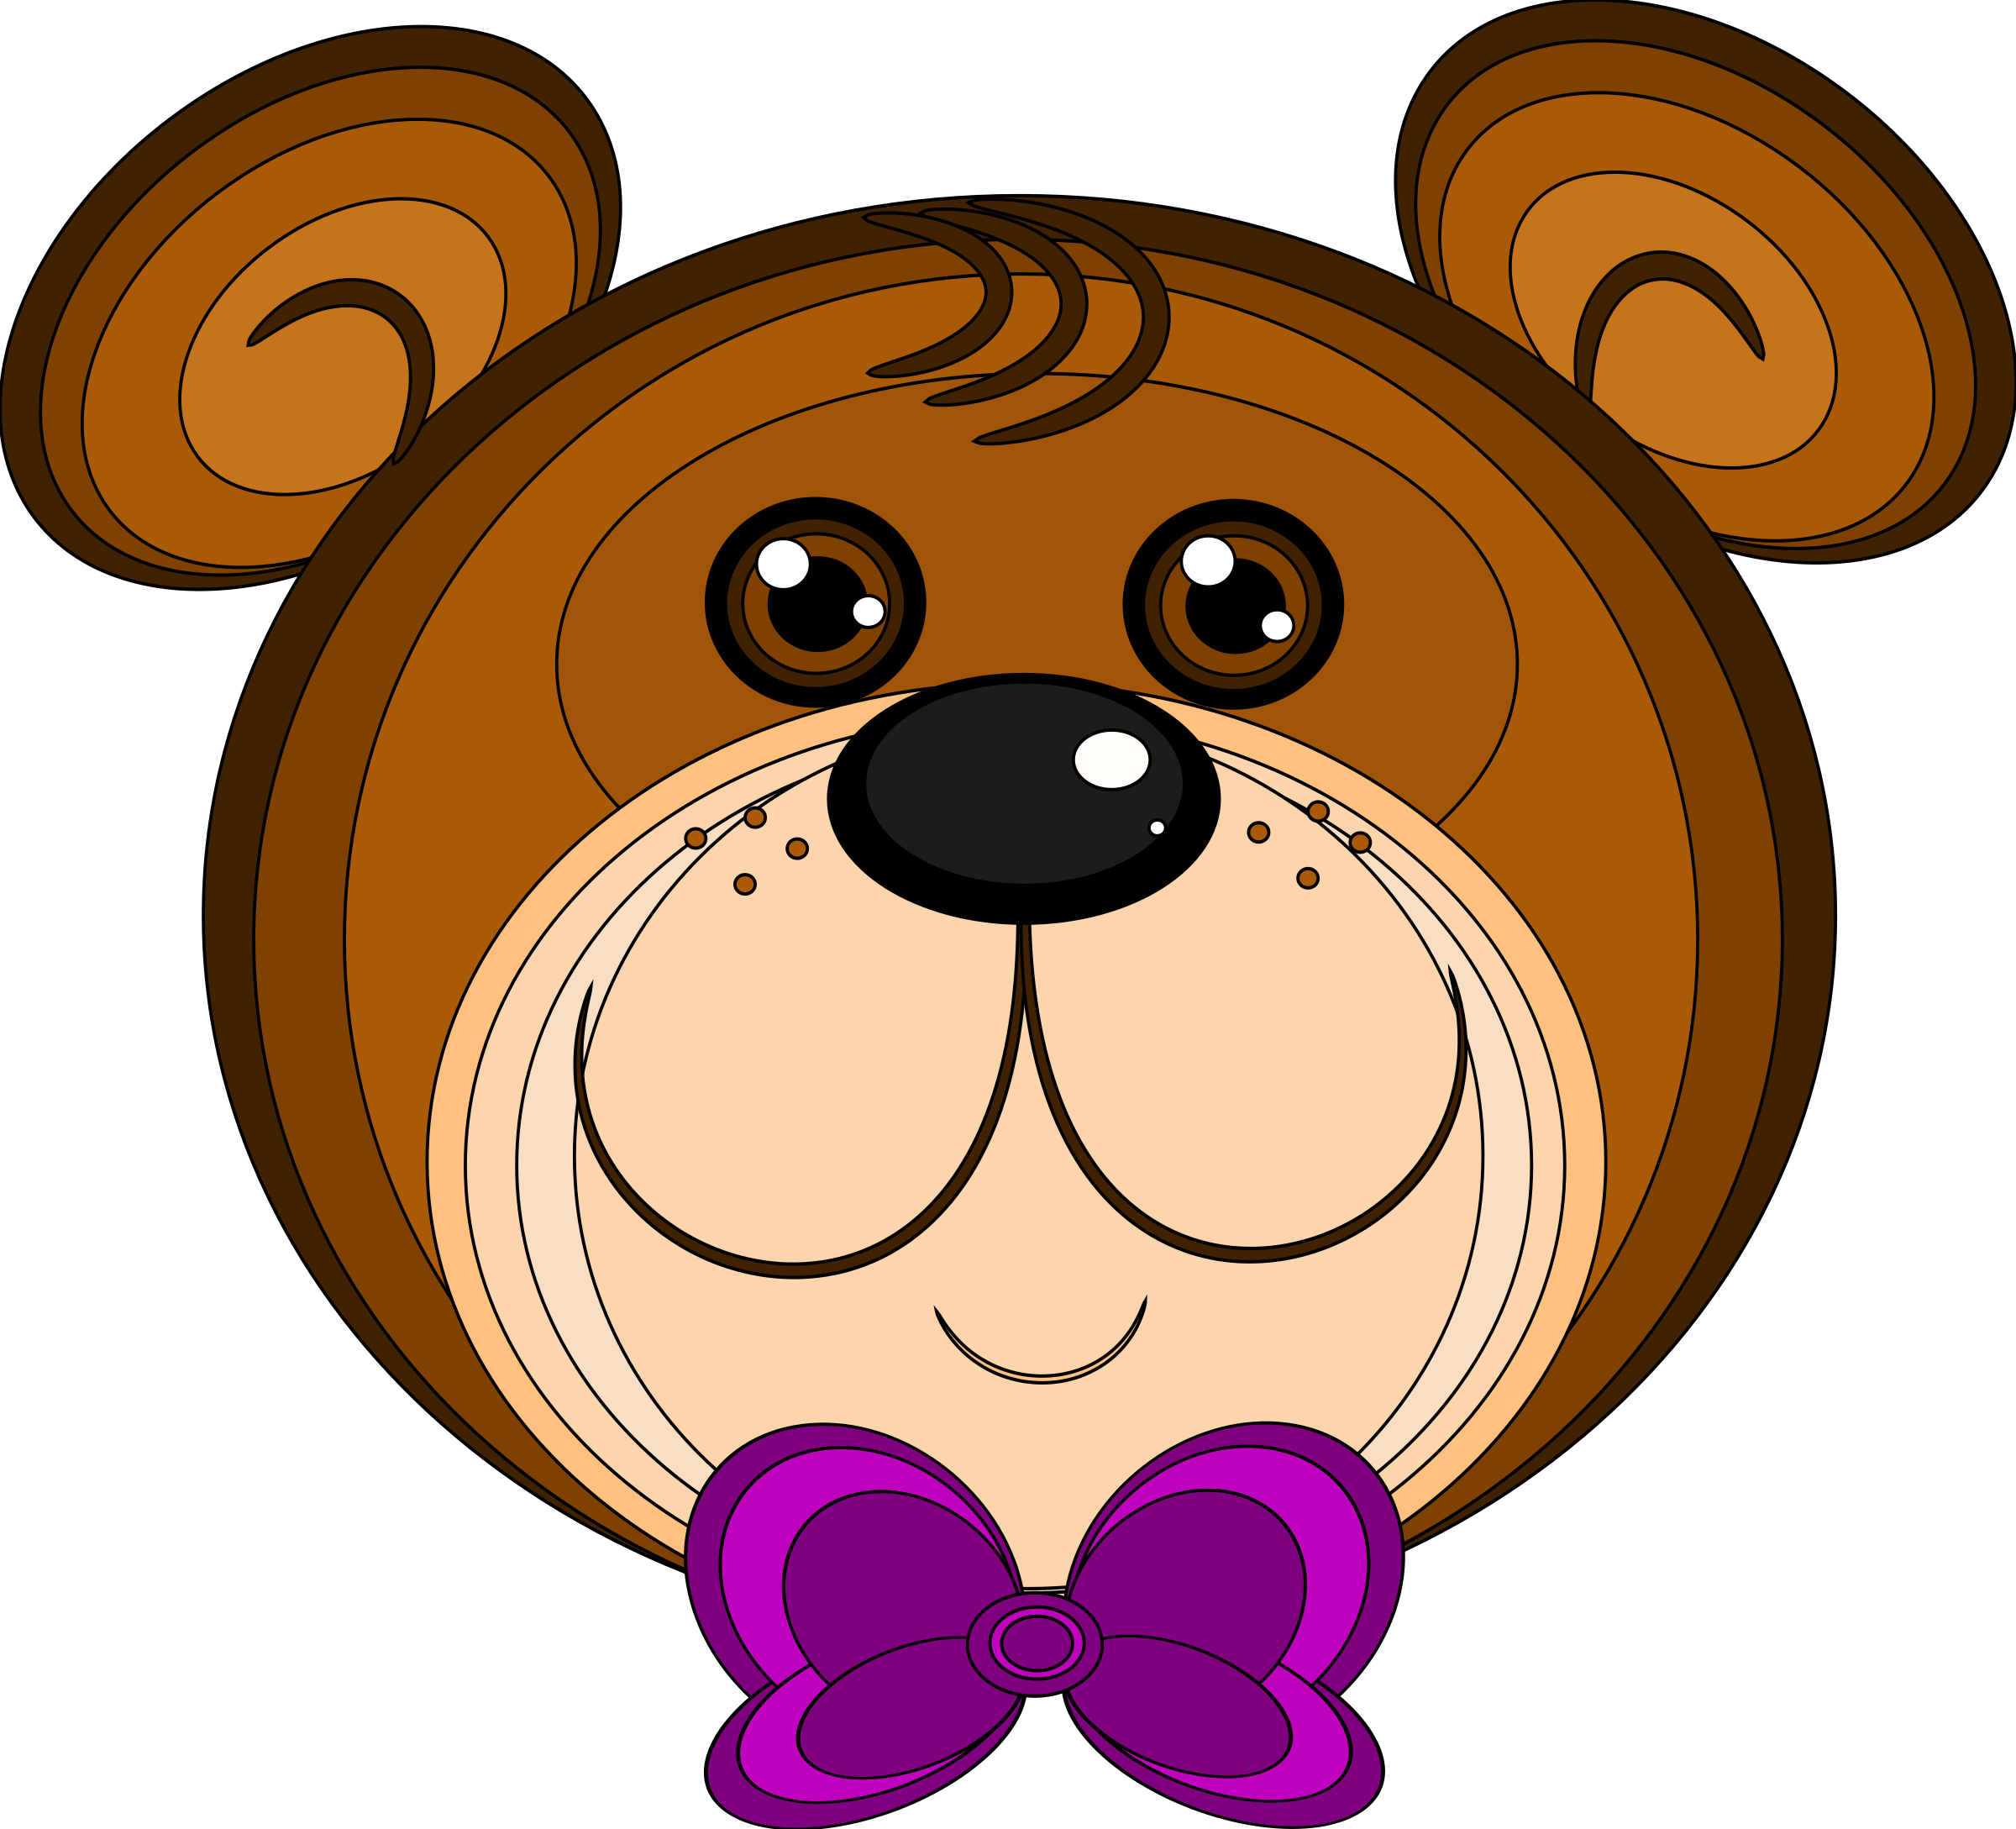 jpg transparent stock Big image png. Clipart teddy bear